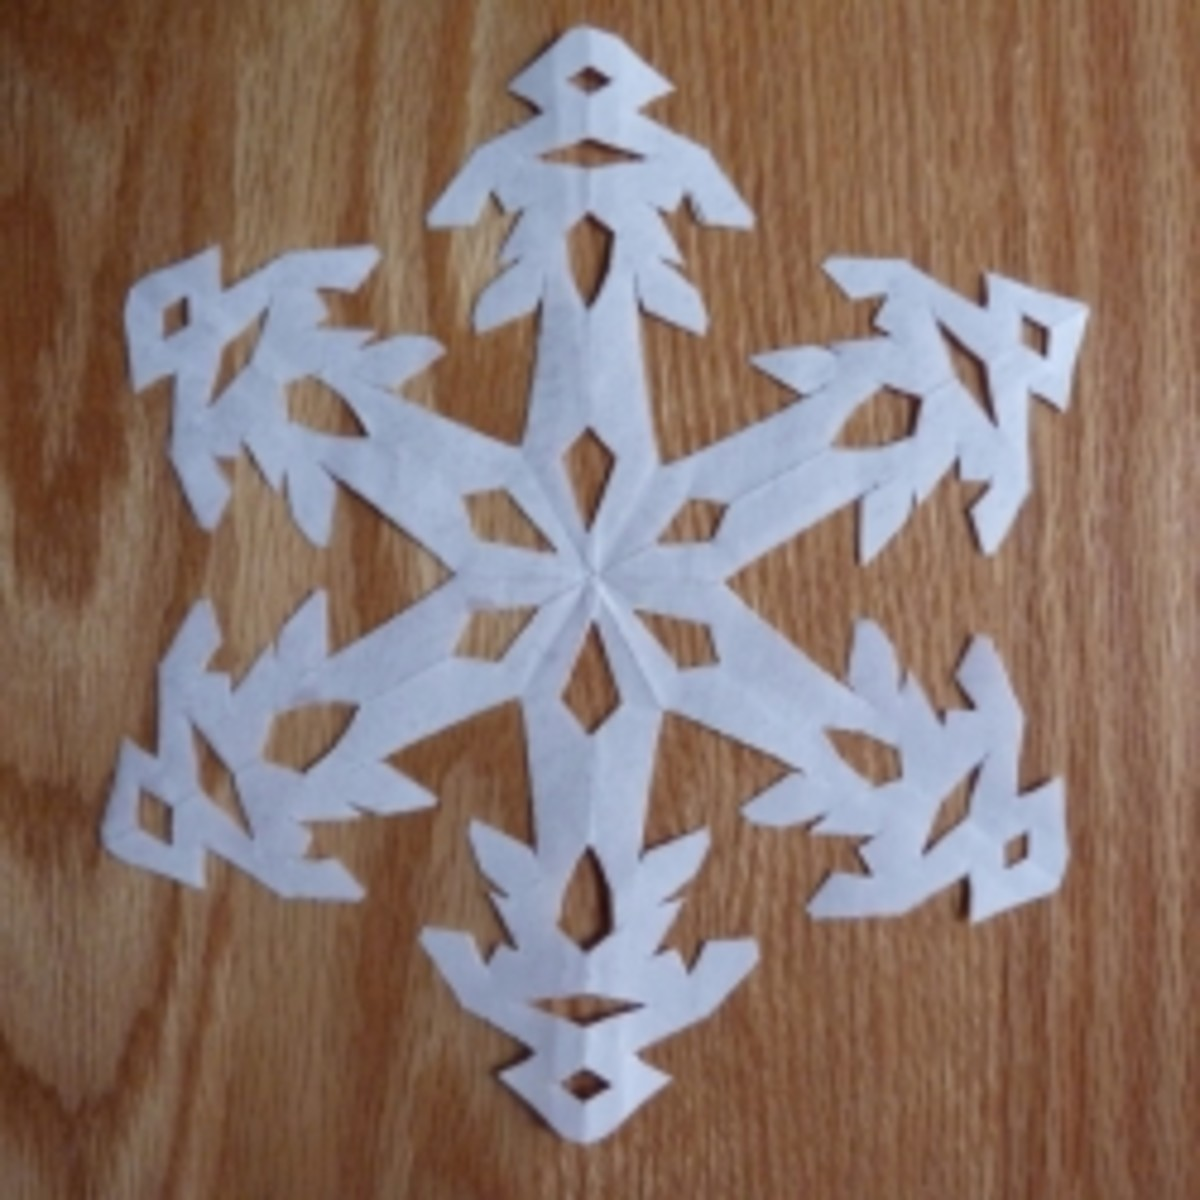 Instructions for Making Paper Snowflakes